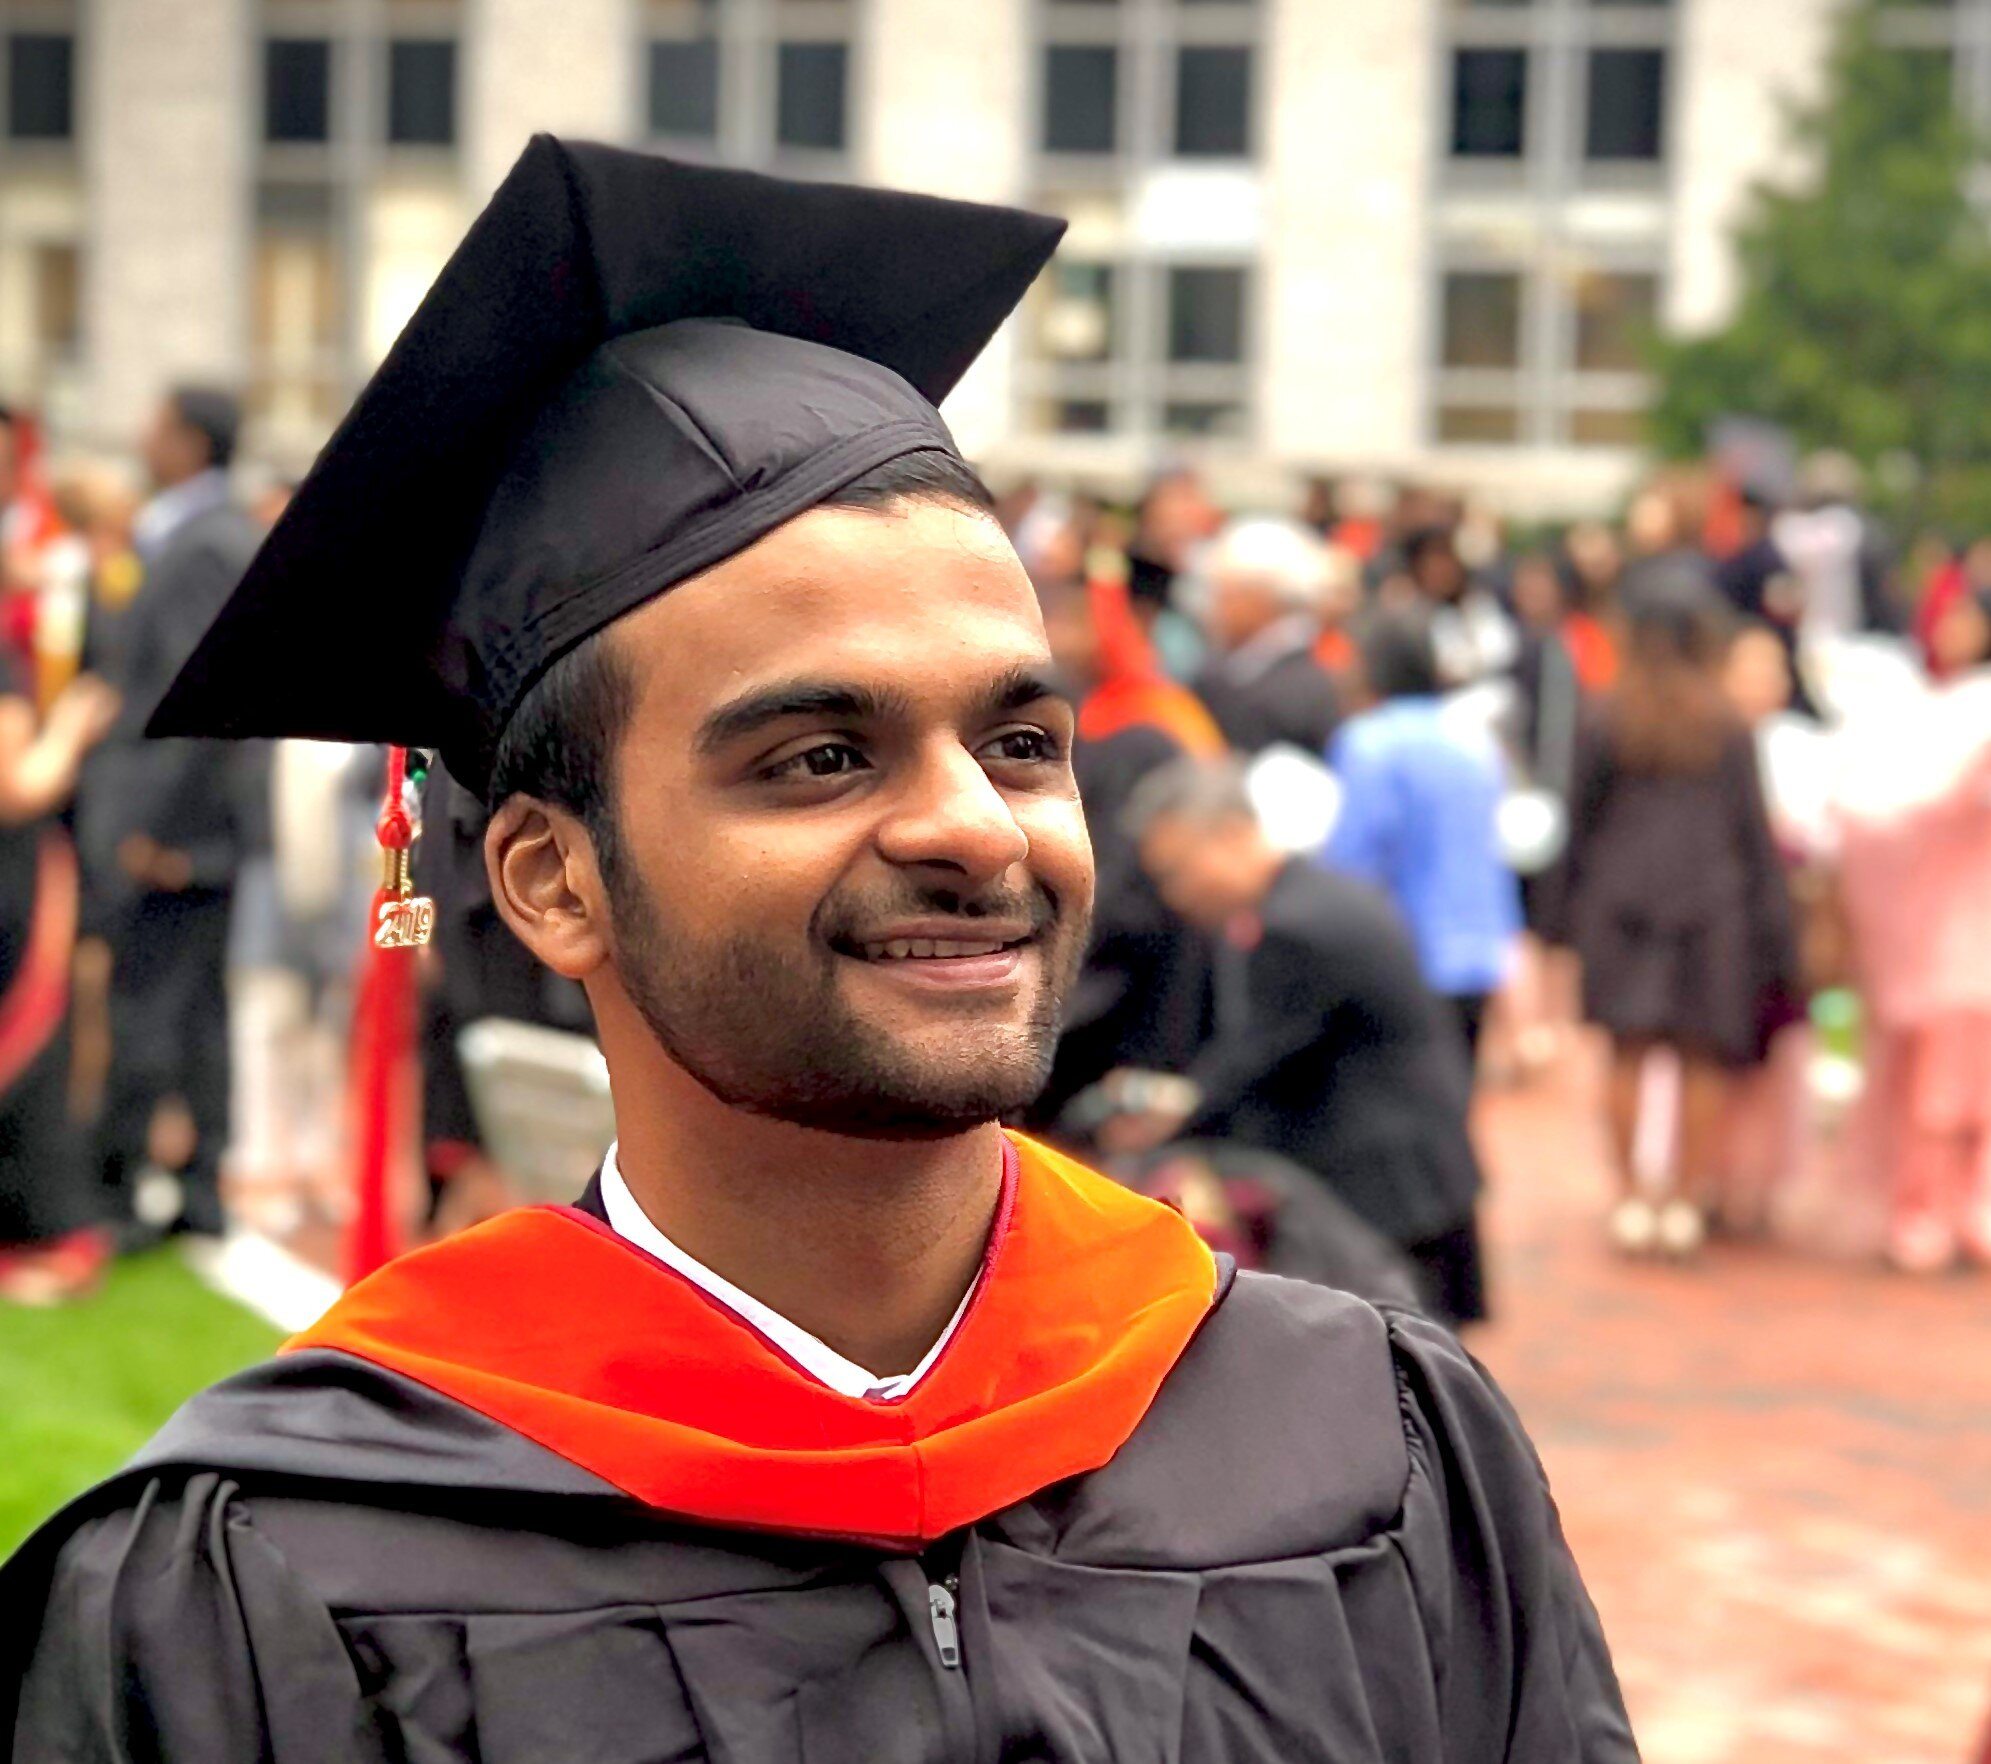 Pranay Shah, Mechanical Engineer   Mr. Shah assists in the deployment and management of our software. Pranay previously worked as an Energy Engineer in Qatar, and received his MS in Energy Systems from Northeastern University, and BS from GTU in India. Pranay is also a LEED Green Associate.